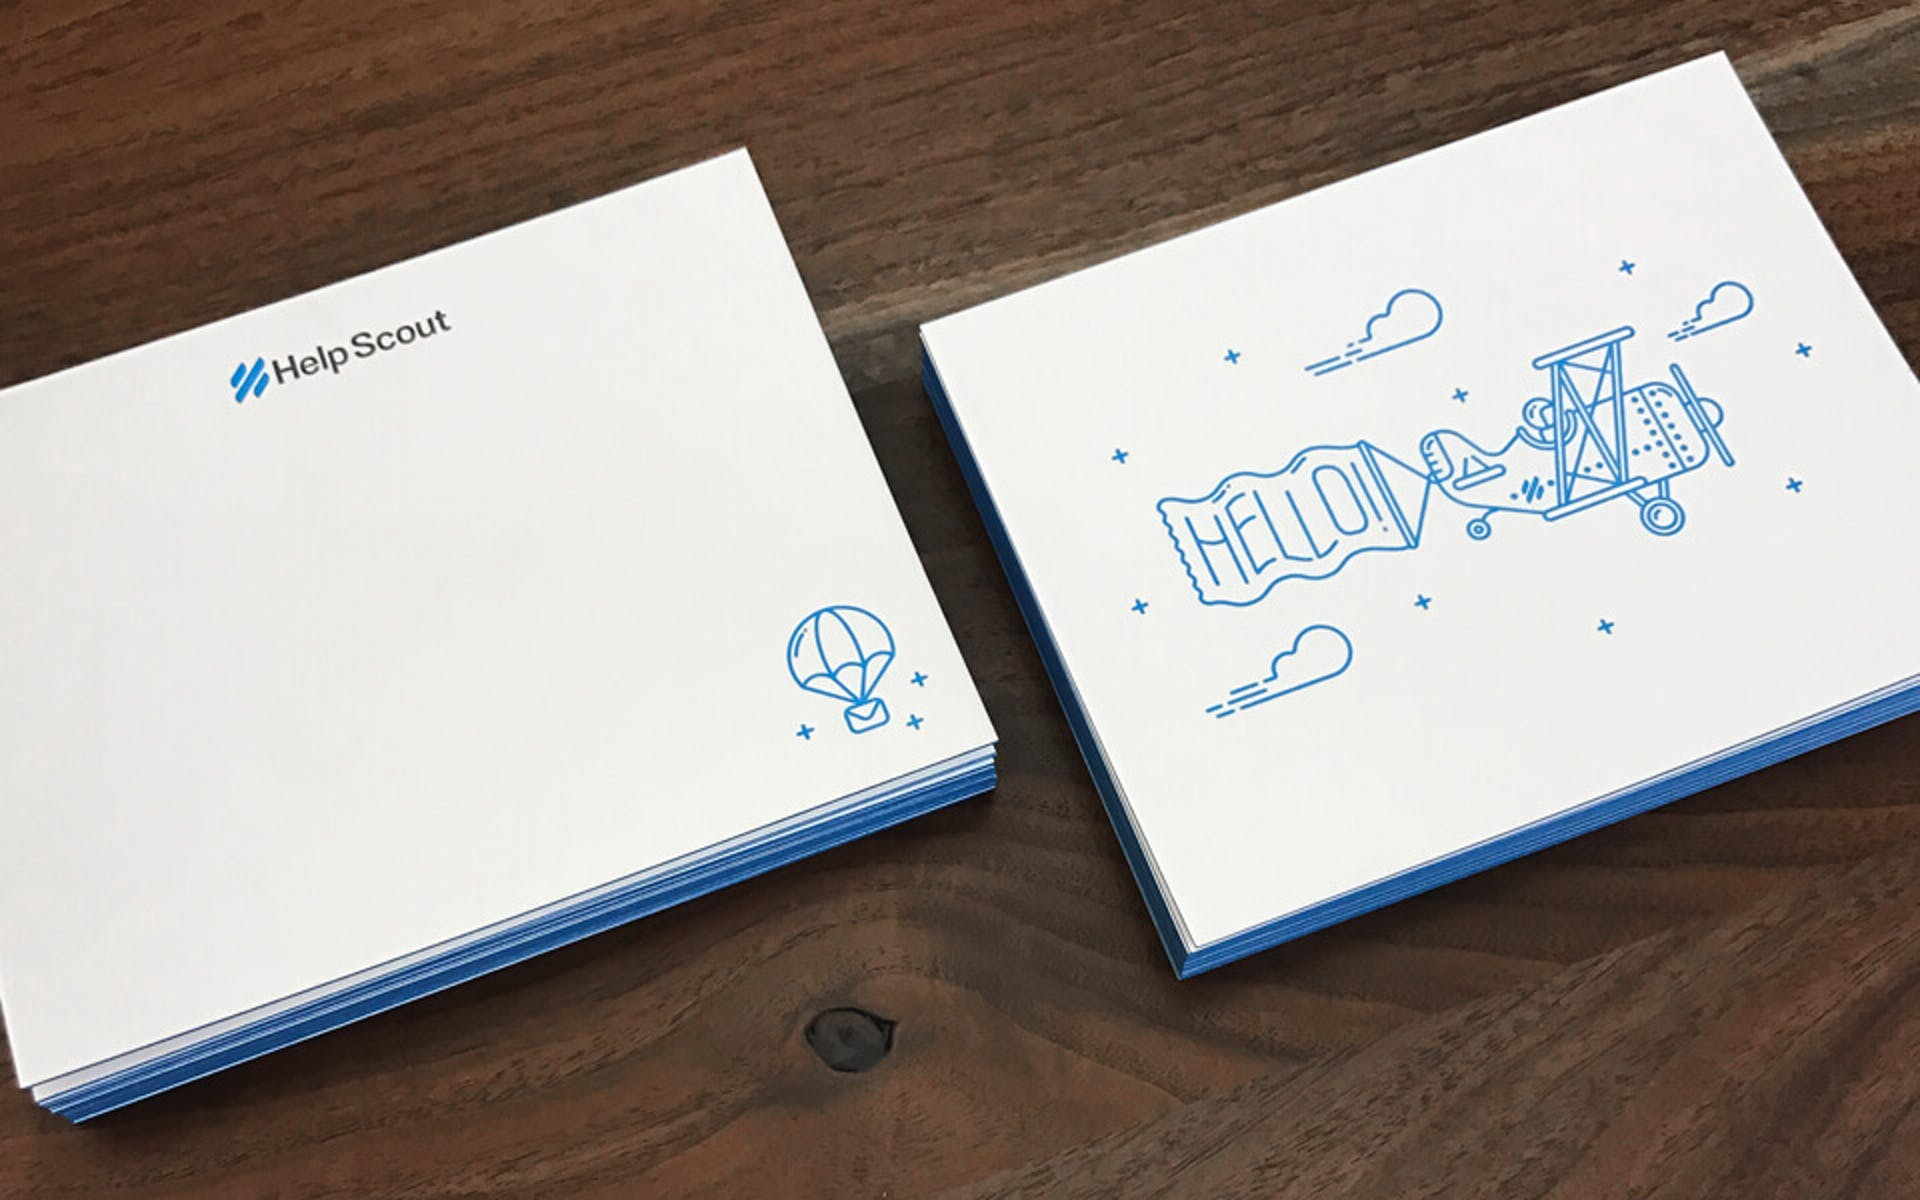 Help Scout's letterpressed notecards